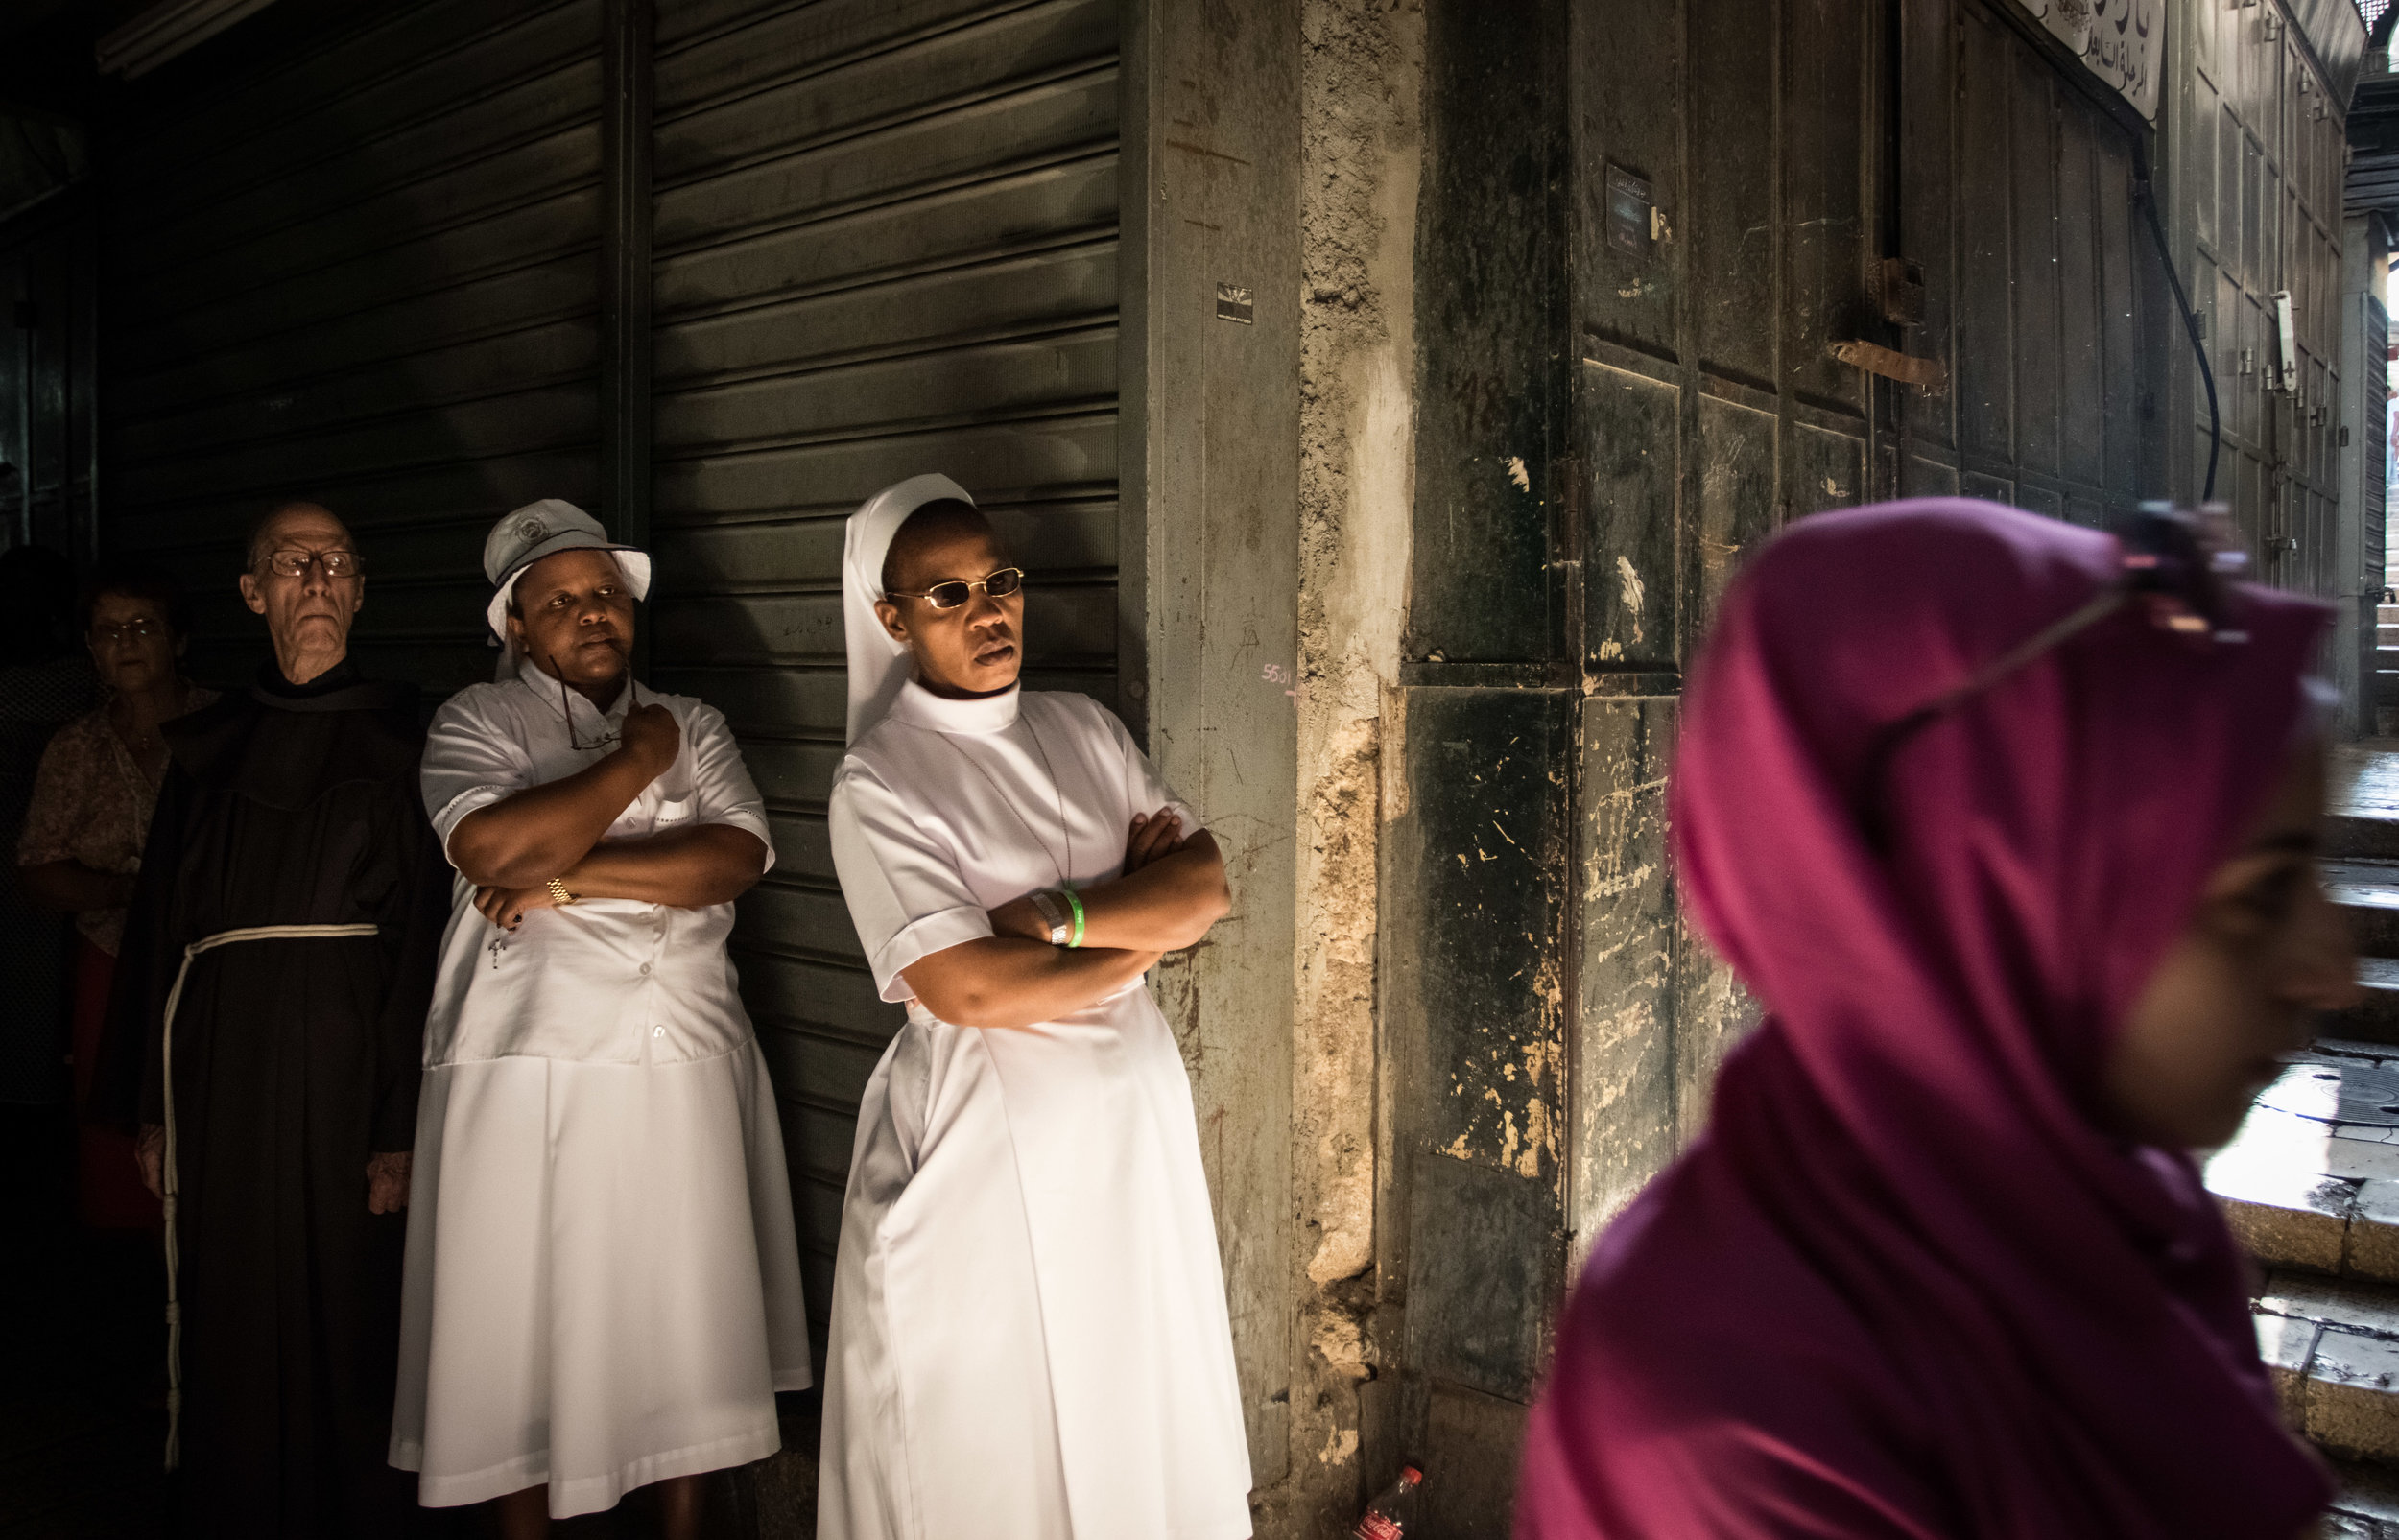 A Muslim woman passes by a group of Christian nuns and friars as they gather at one of the 15 stations of the cross during the weekly Way of the Cross walk through the Old City of Jerusalem, July 29, 2016. The path of the walk is believed to be the route Jesus Christ walked before being crucified by the Romans under the command of Pontius Pilate. Every Friday, a group of Christian worshippers begin walking from the Church of the Flagellation, near the first station of the cross, on Via Dolorosa, to the Holy Church of the Sepulchre, stopping along the way to pray at each of the stations where various events occurred during Jesus's crucifixion.